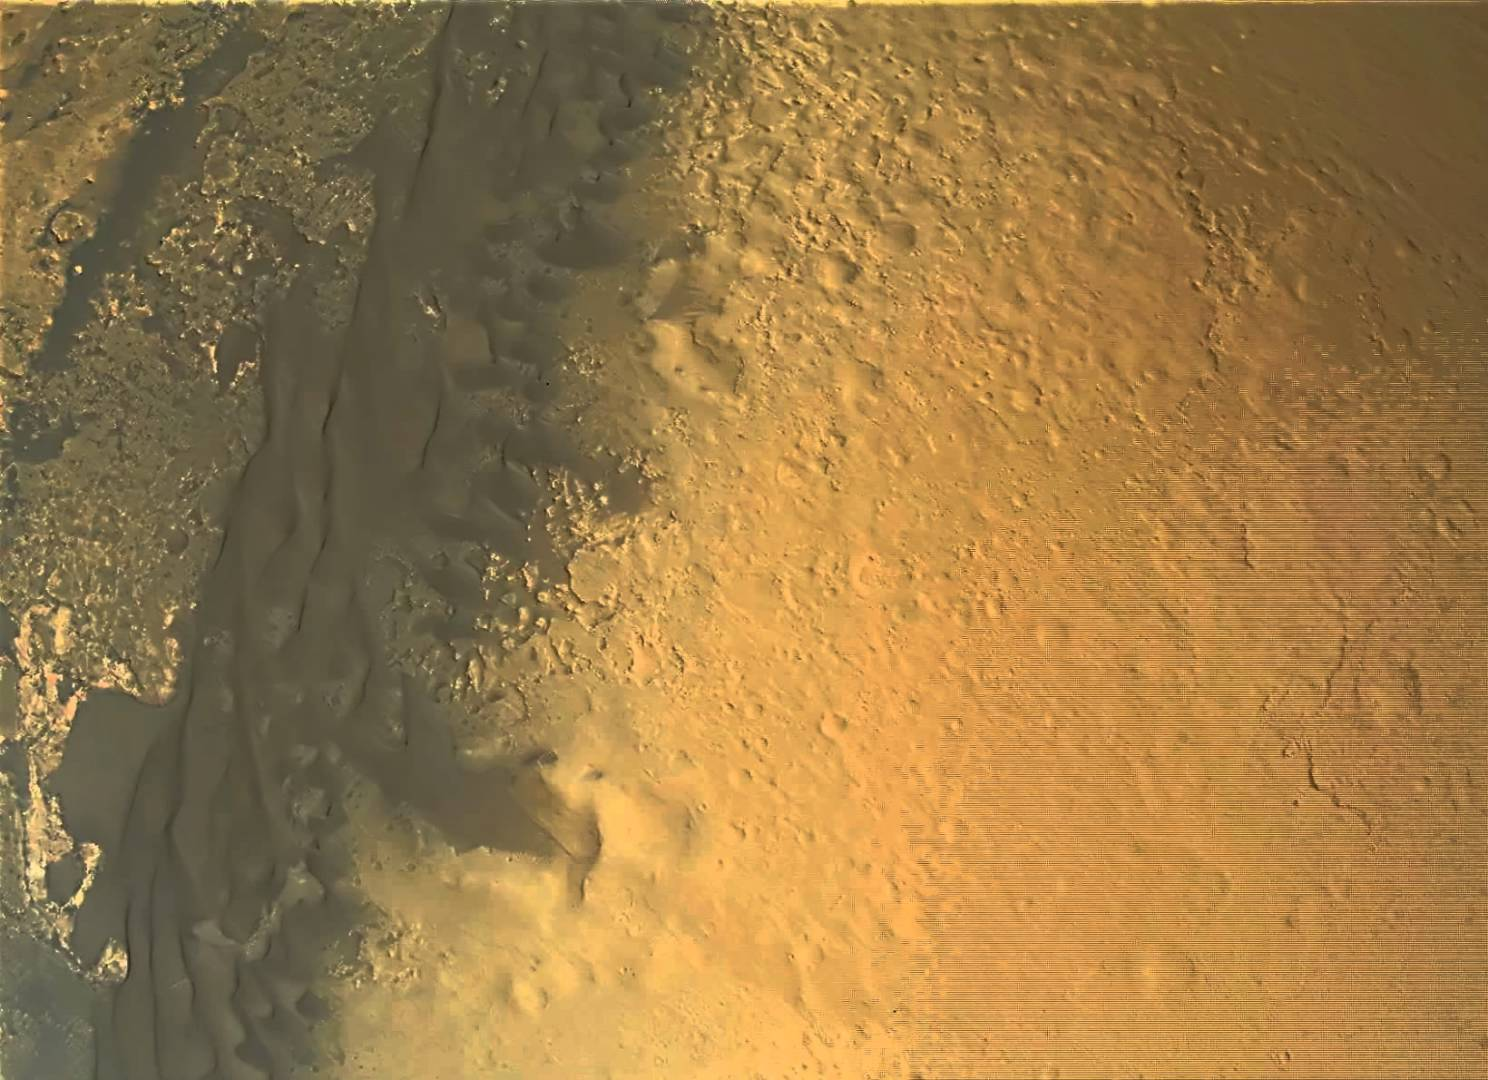 mars rover pictures hd - photo #28